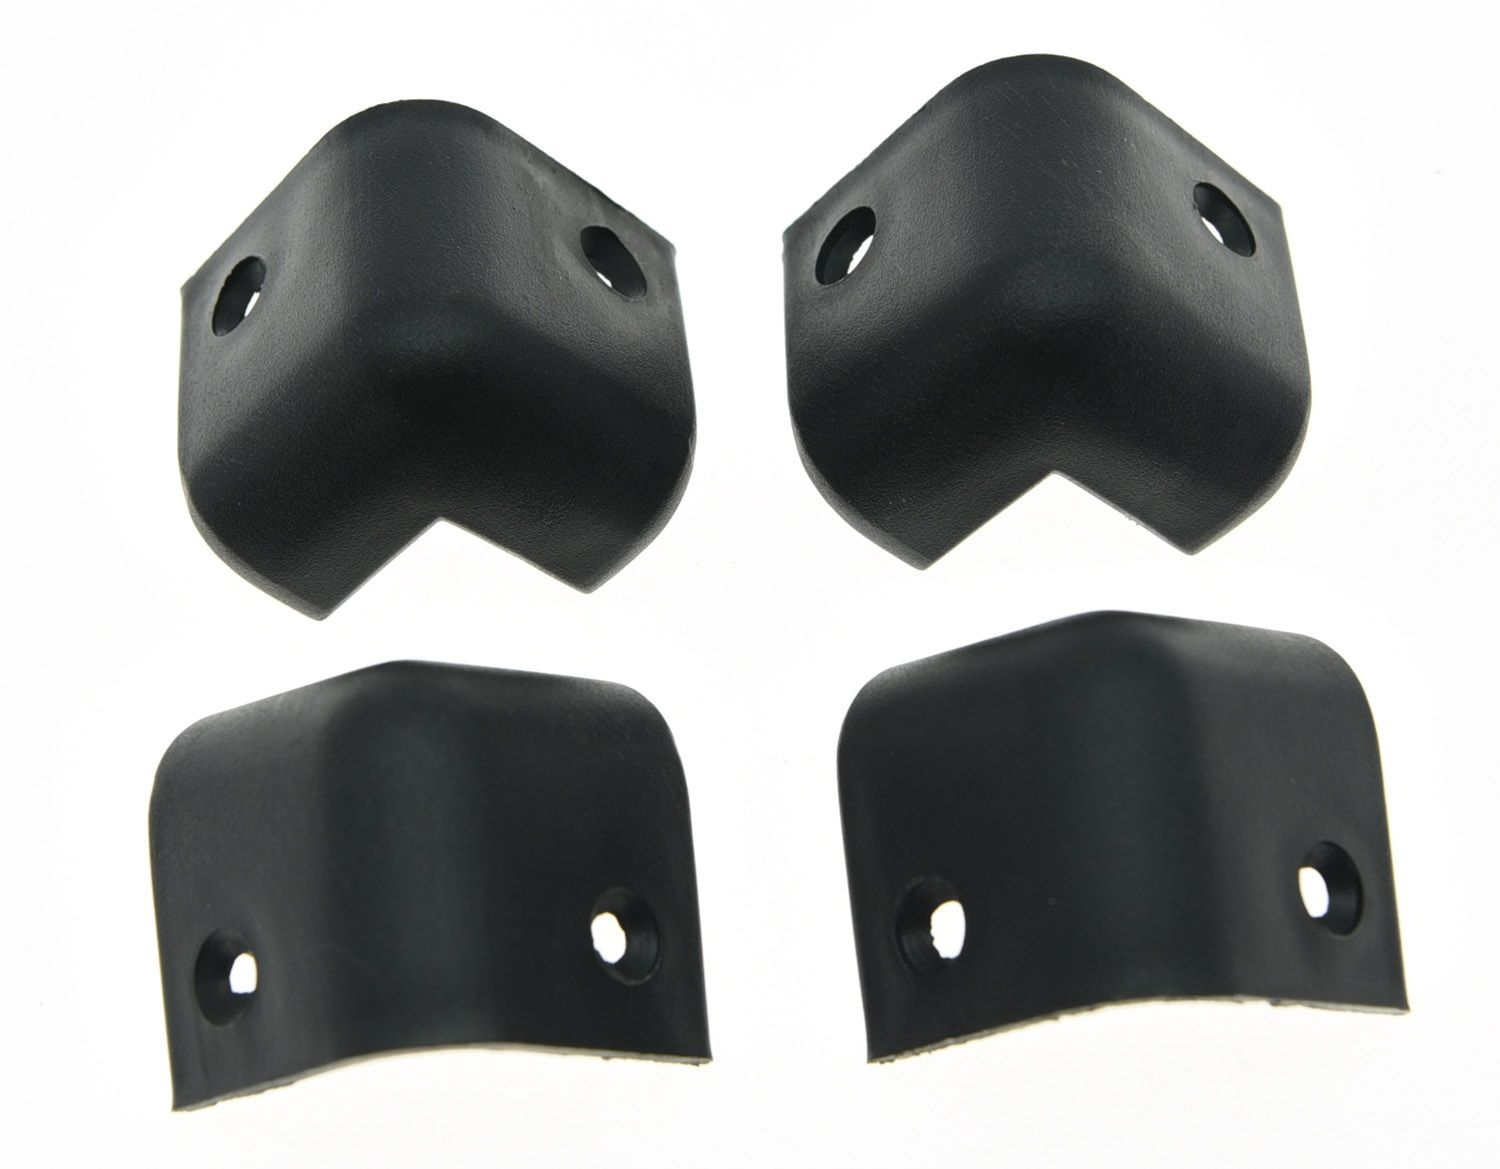 KAISH 8x Hard Plastic 2 Hole Guitar AMP Cabinet Corners Speaker Corner 28x28x28mm